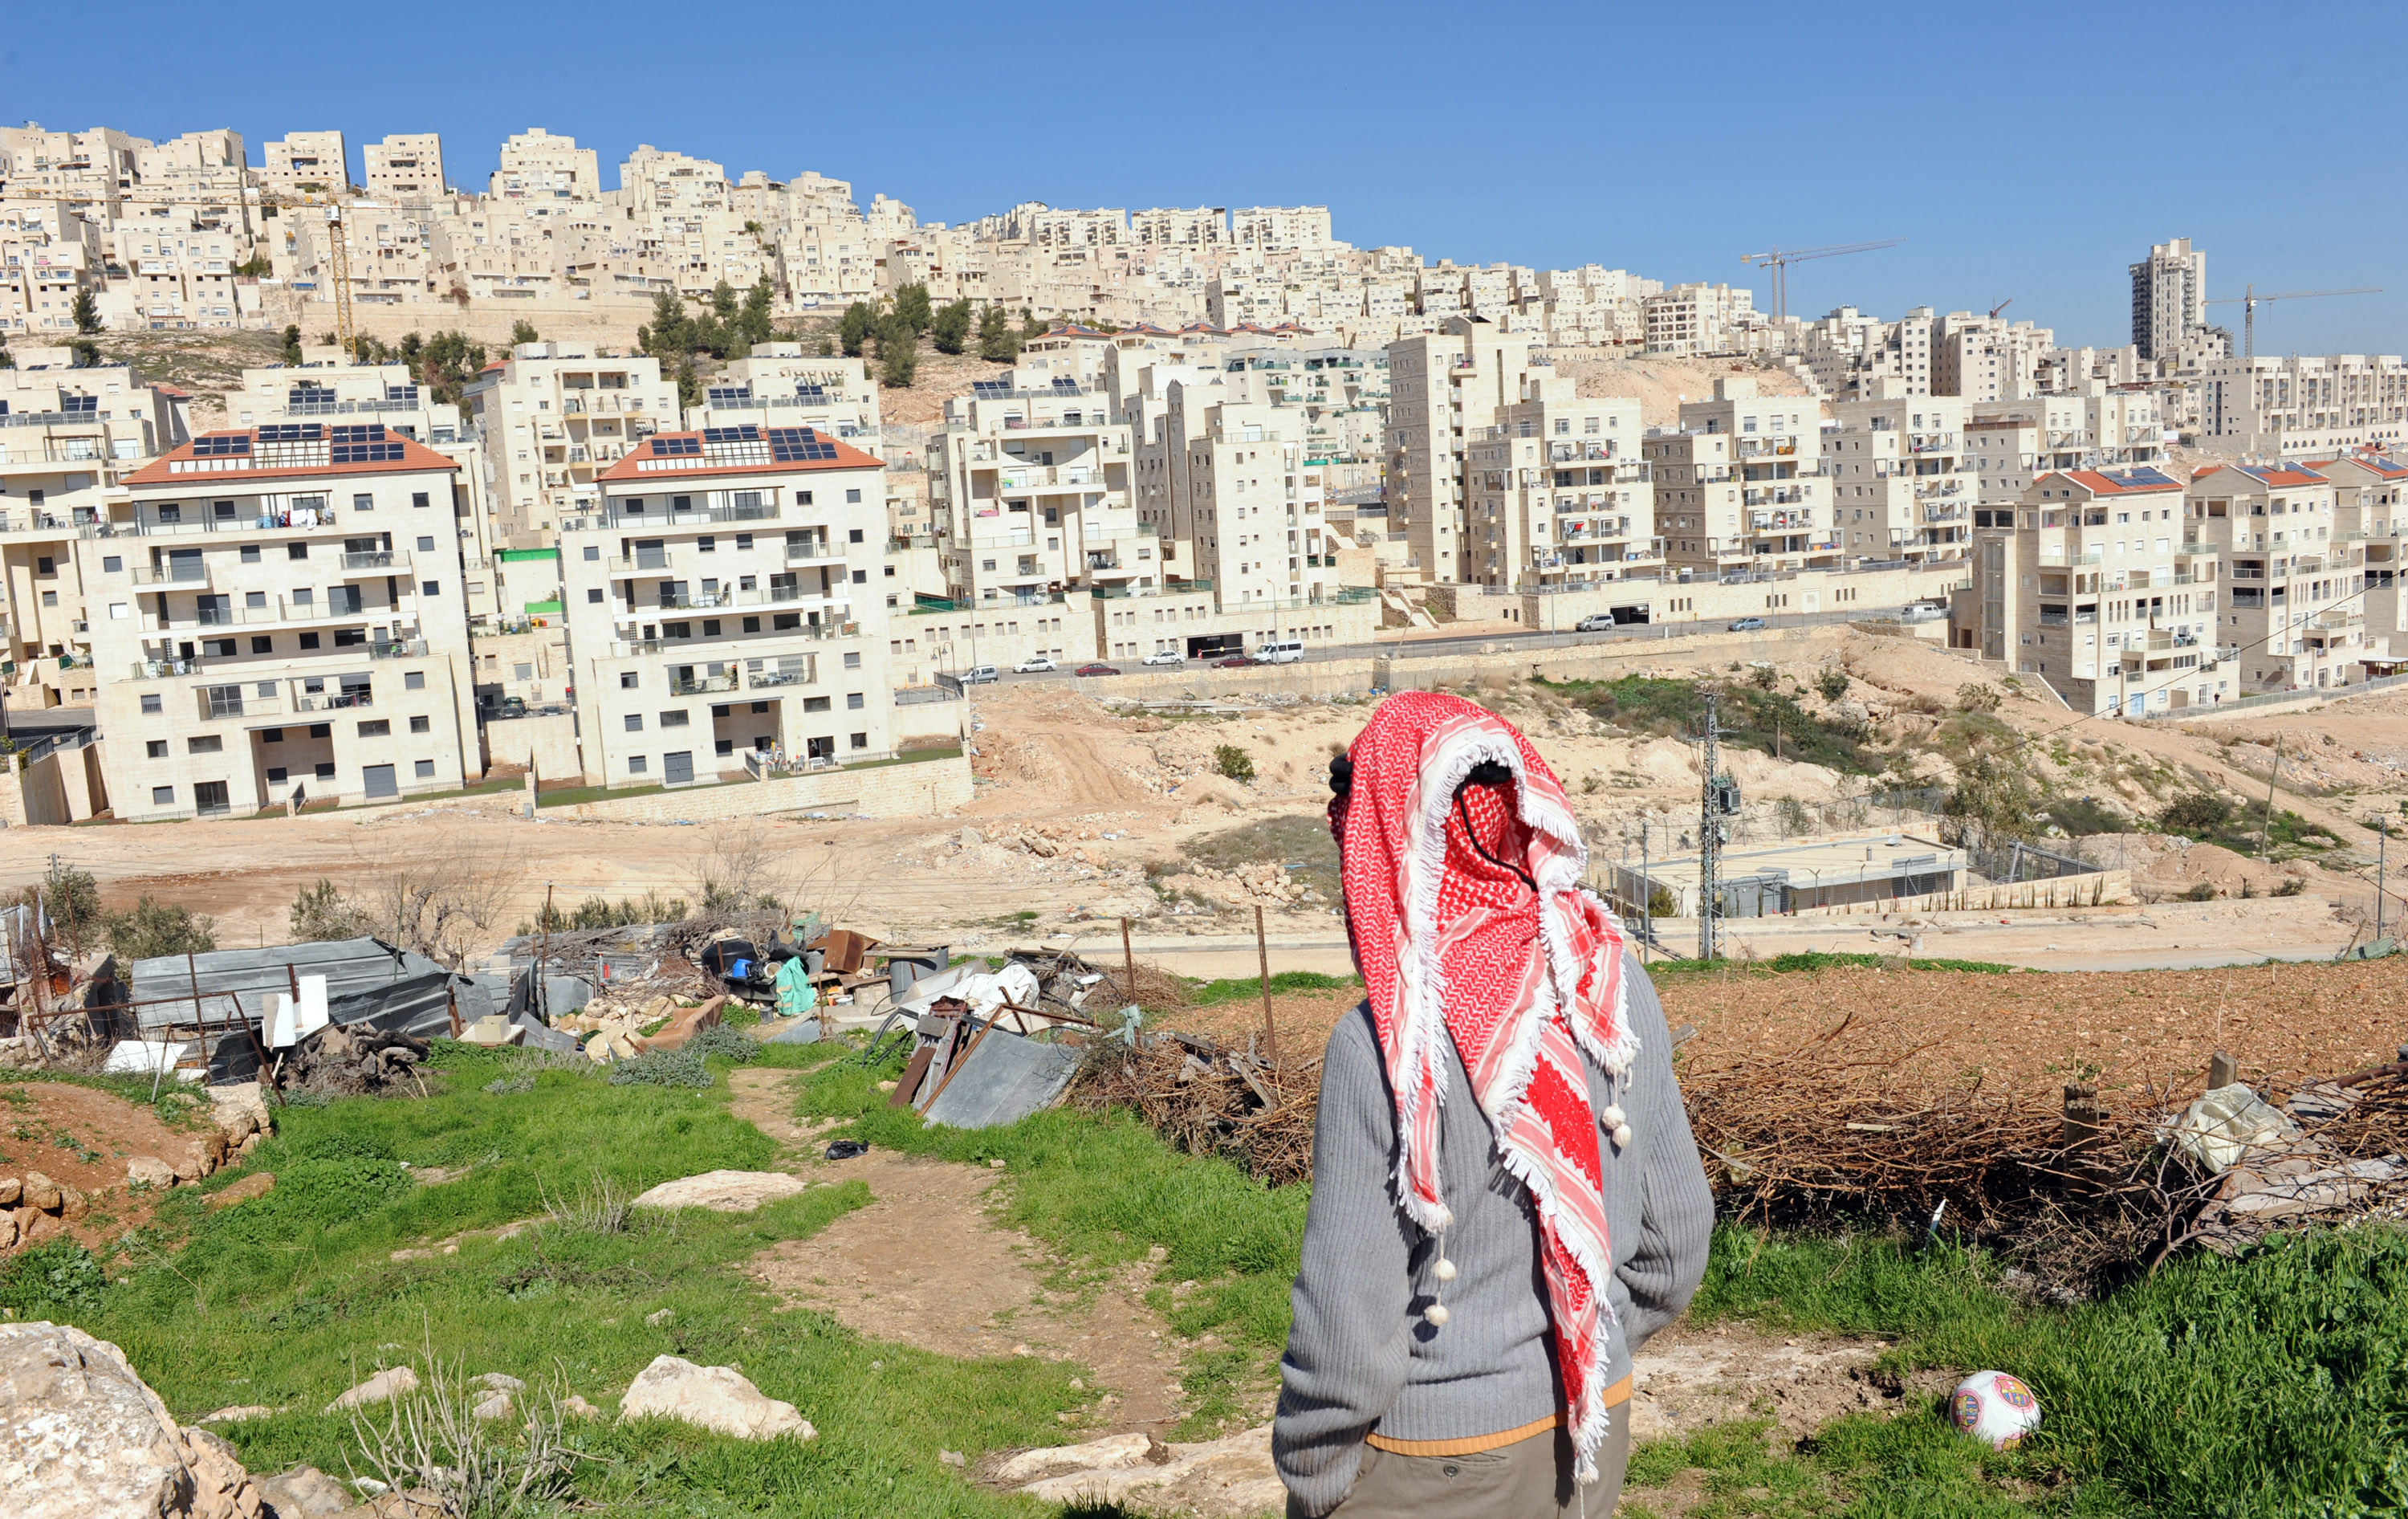 A Palestinian looks at the Israeli settlement Har Homa in the West Bank